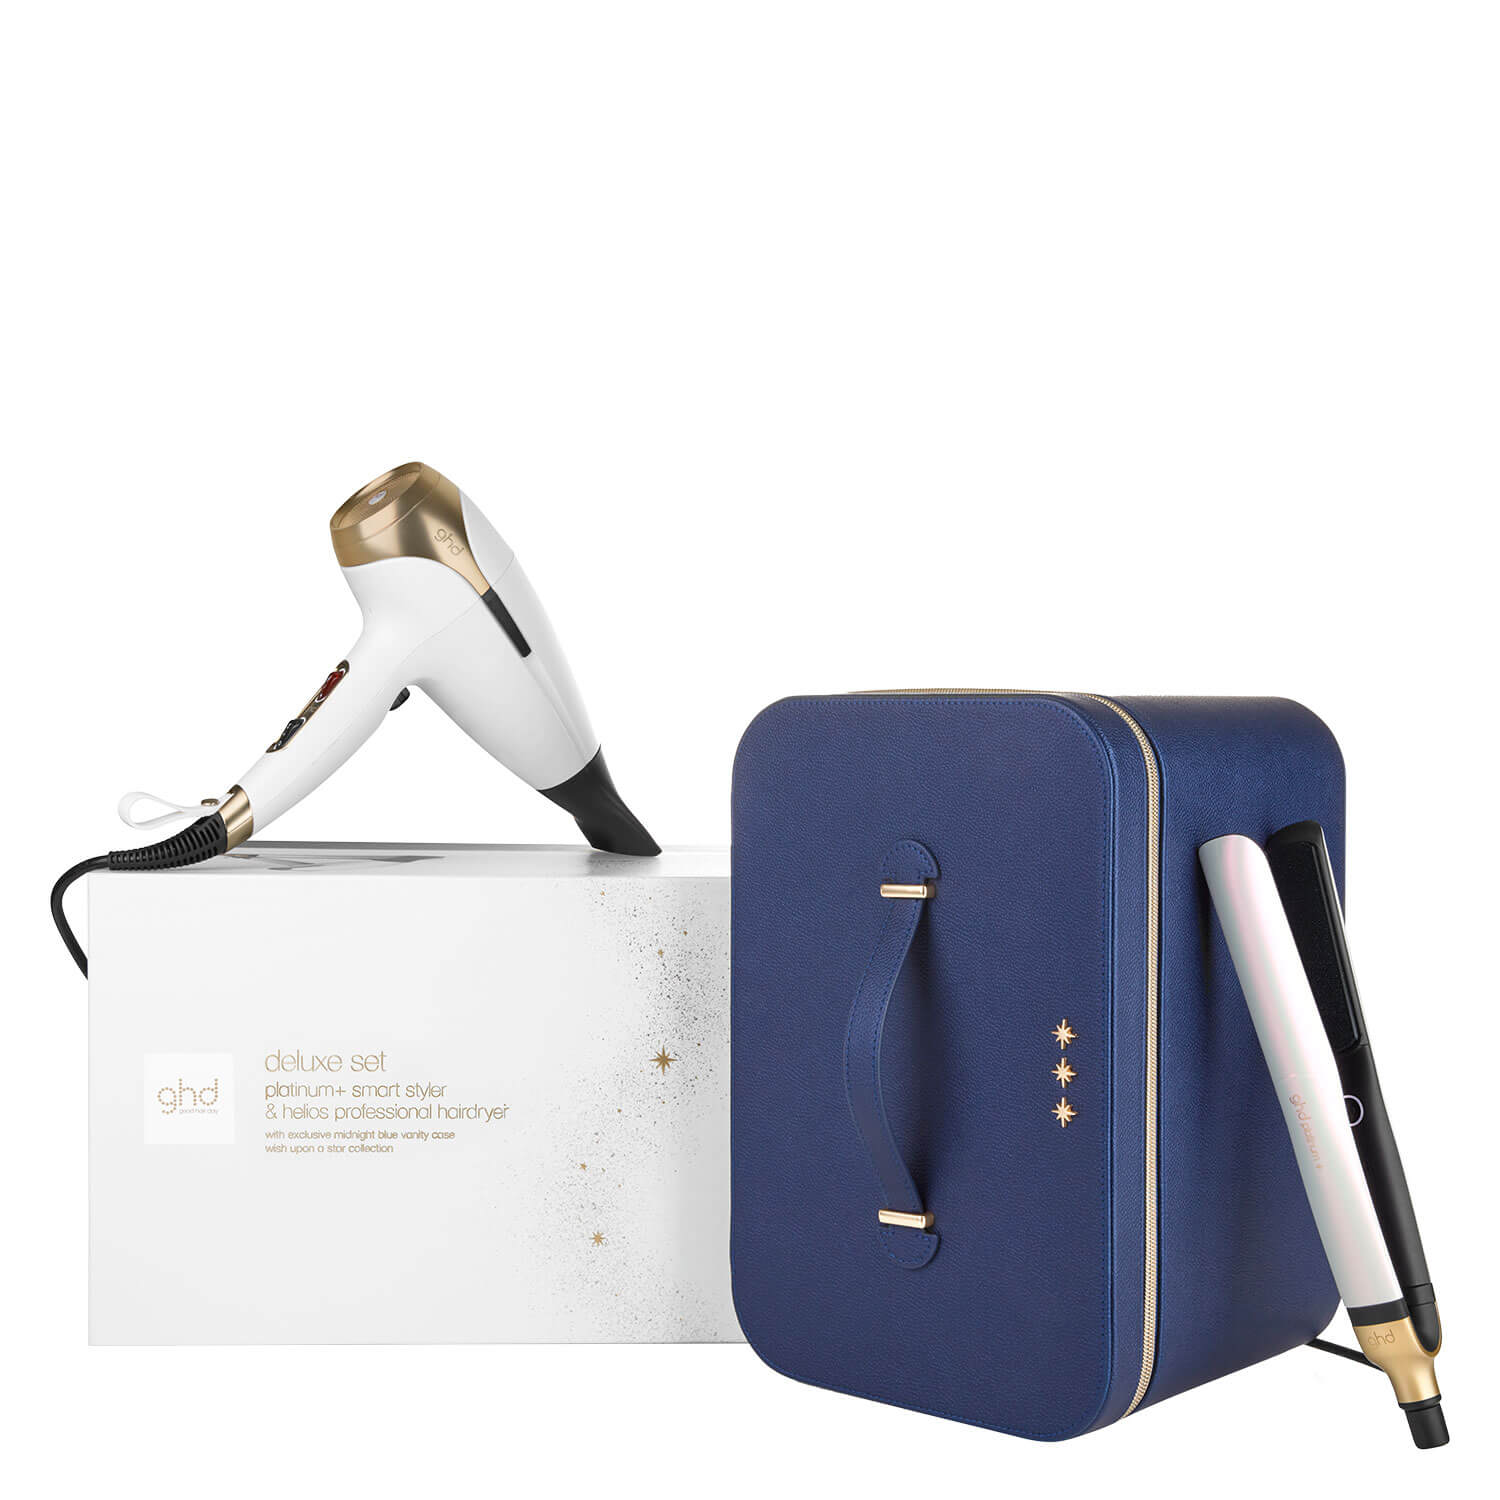 ghd Tools - Deluxe Set